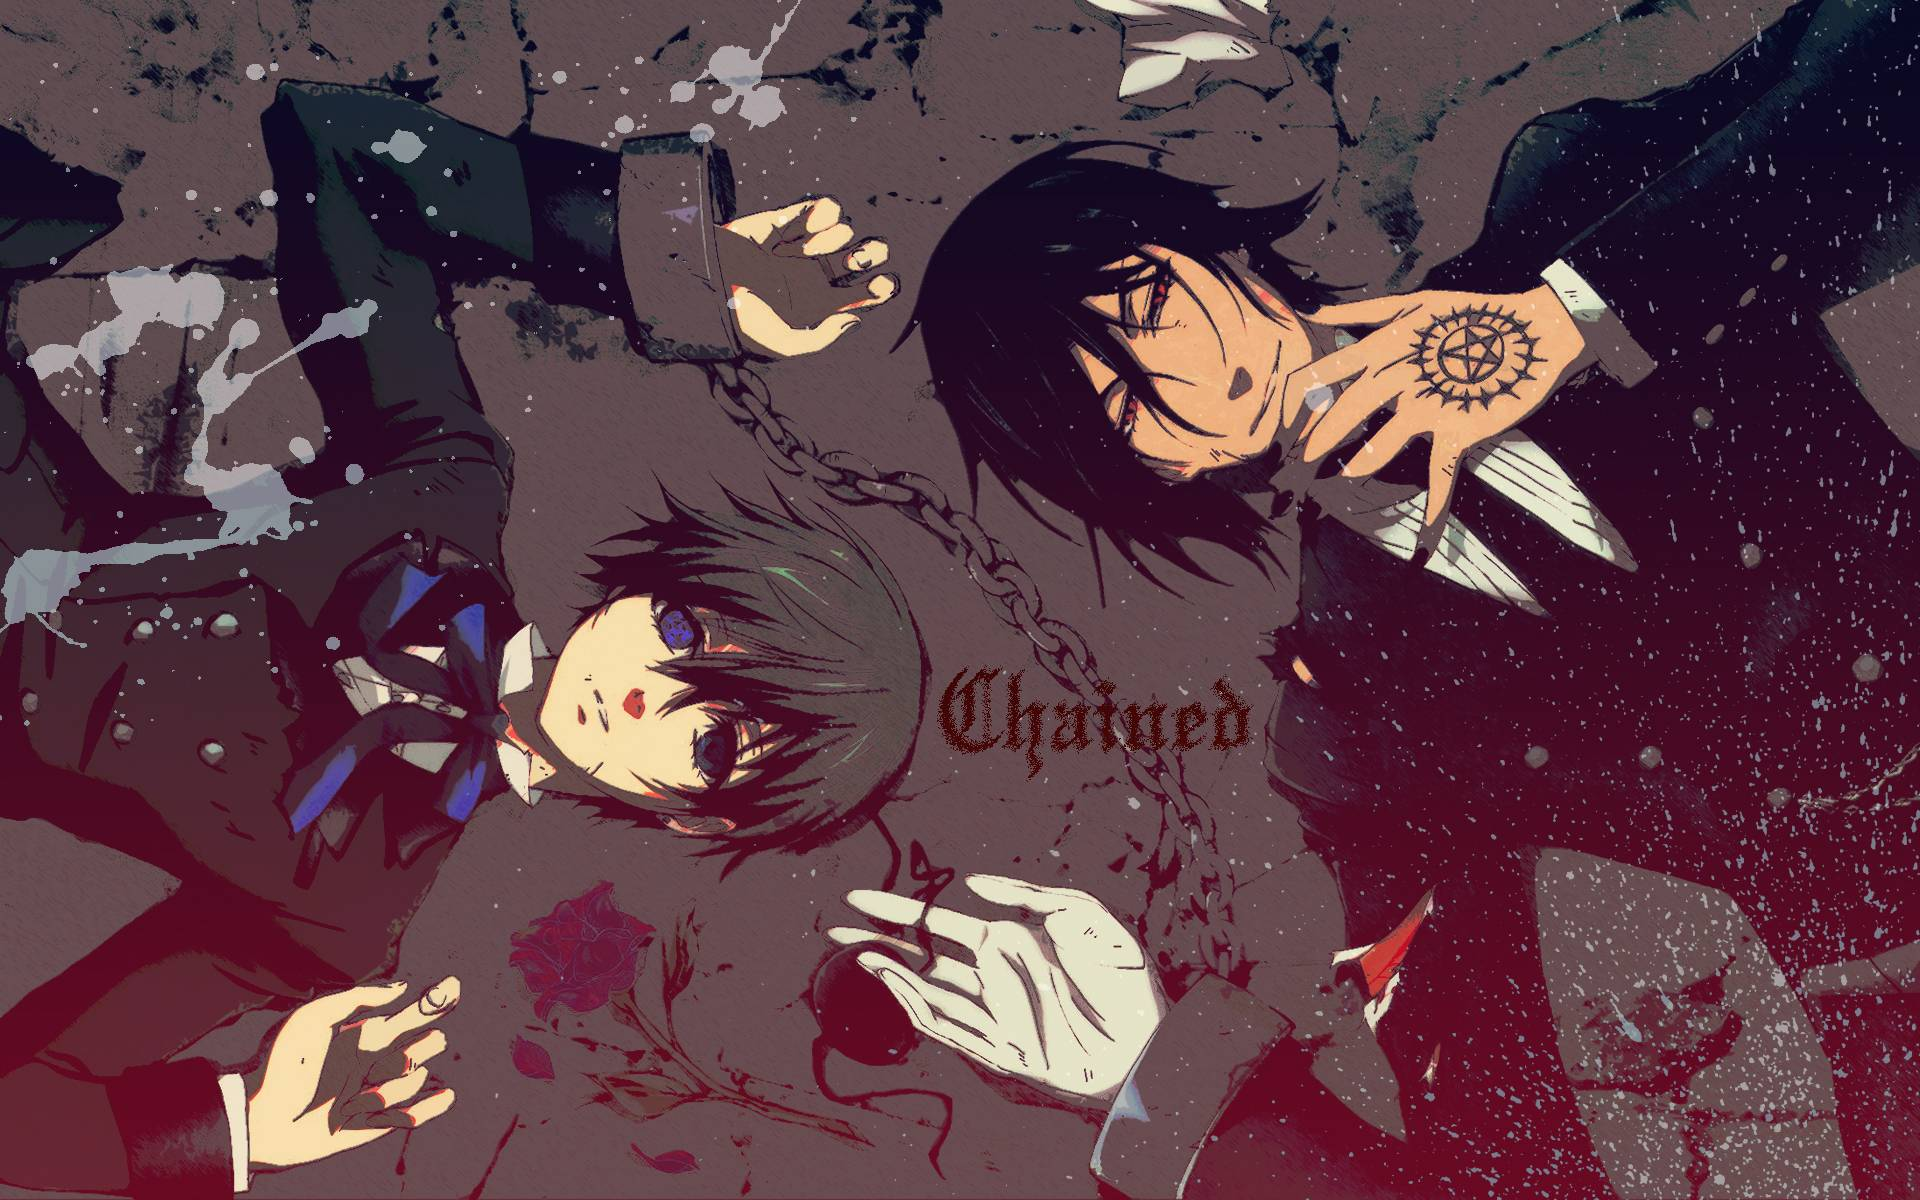 Black Butler Computer Wallpapers, Desktop Backgrounds 1920x1200 Id